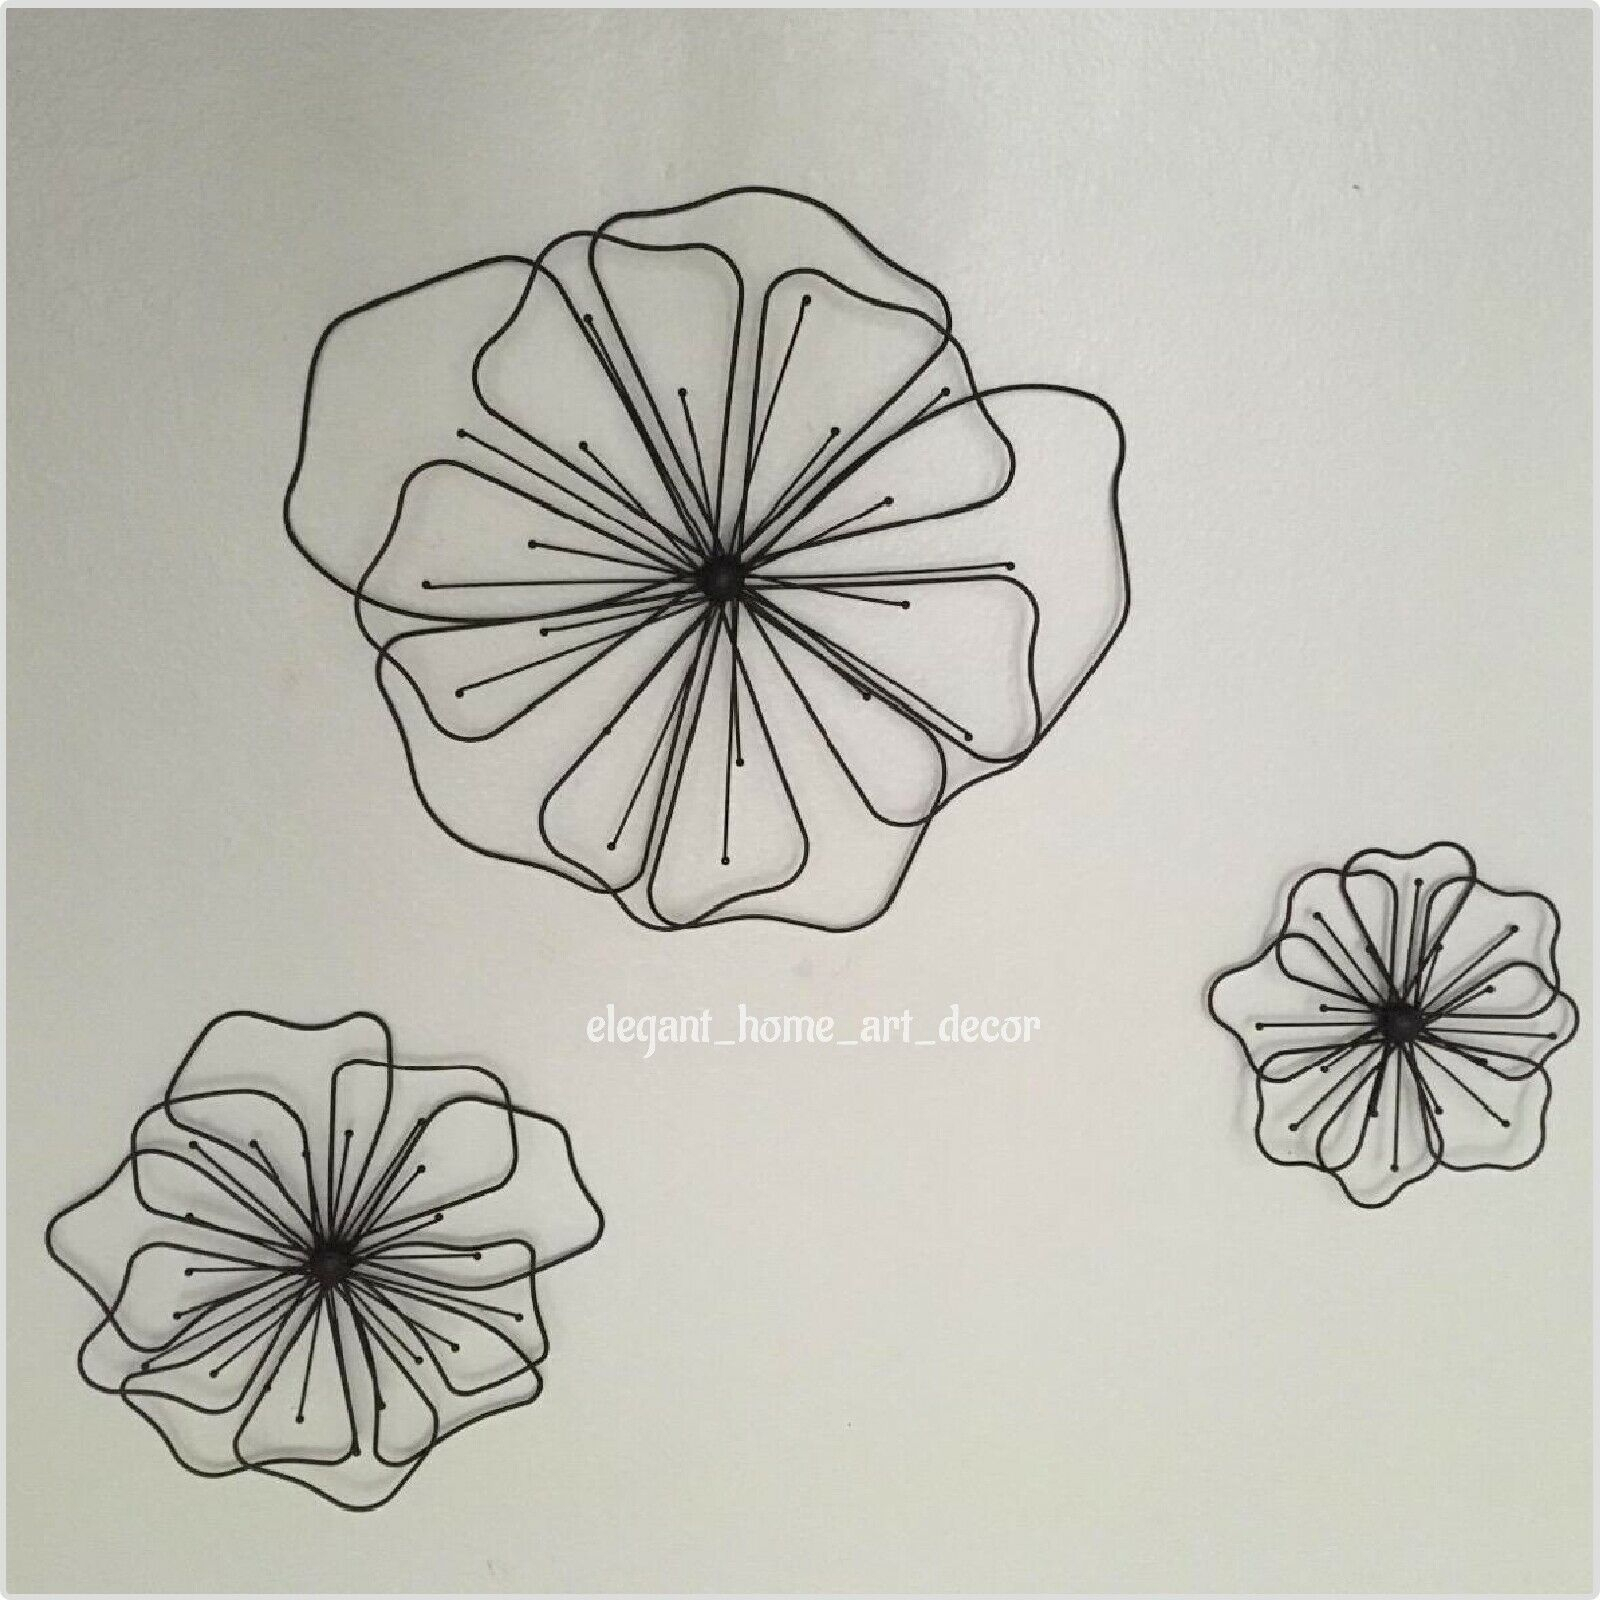 Details About Rustic Metal Flower Wall Decor Abstract Set Of 3 Wire Wall Sculpture Home Garden Regarding Metal Flower Wall Decor (Set Of 3) (View 7 of 30)